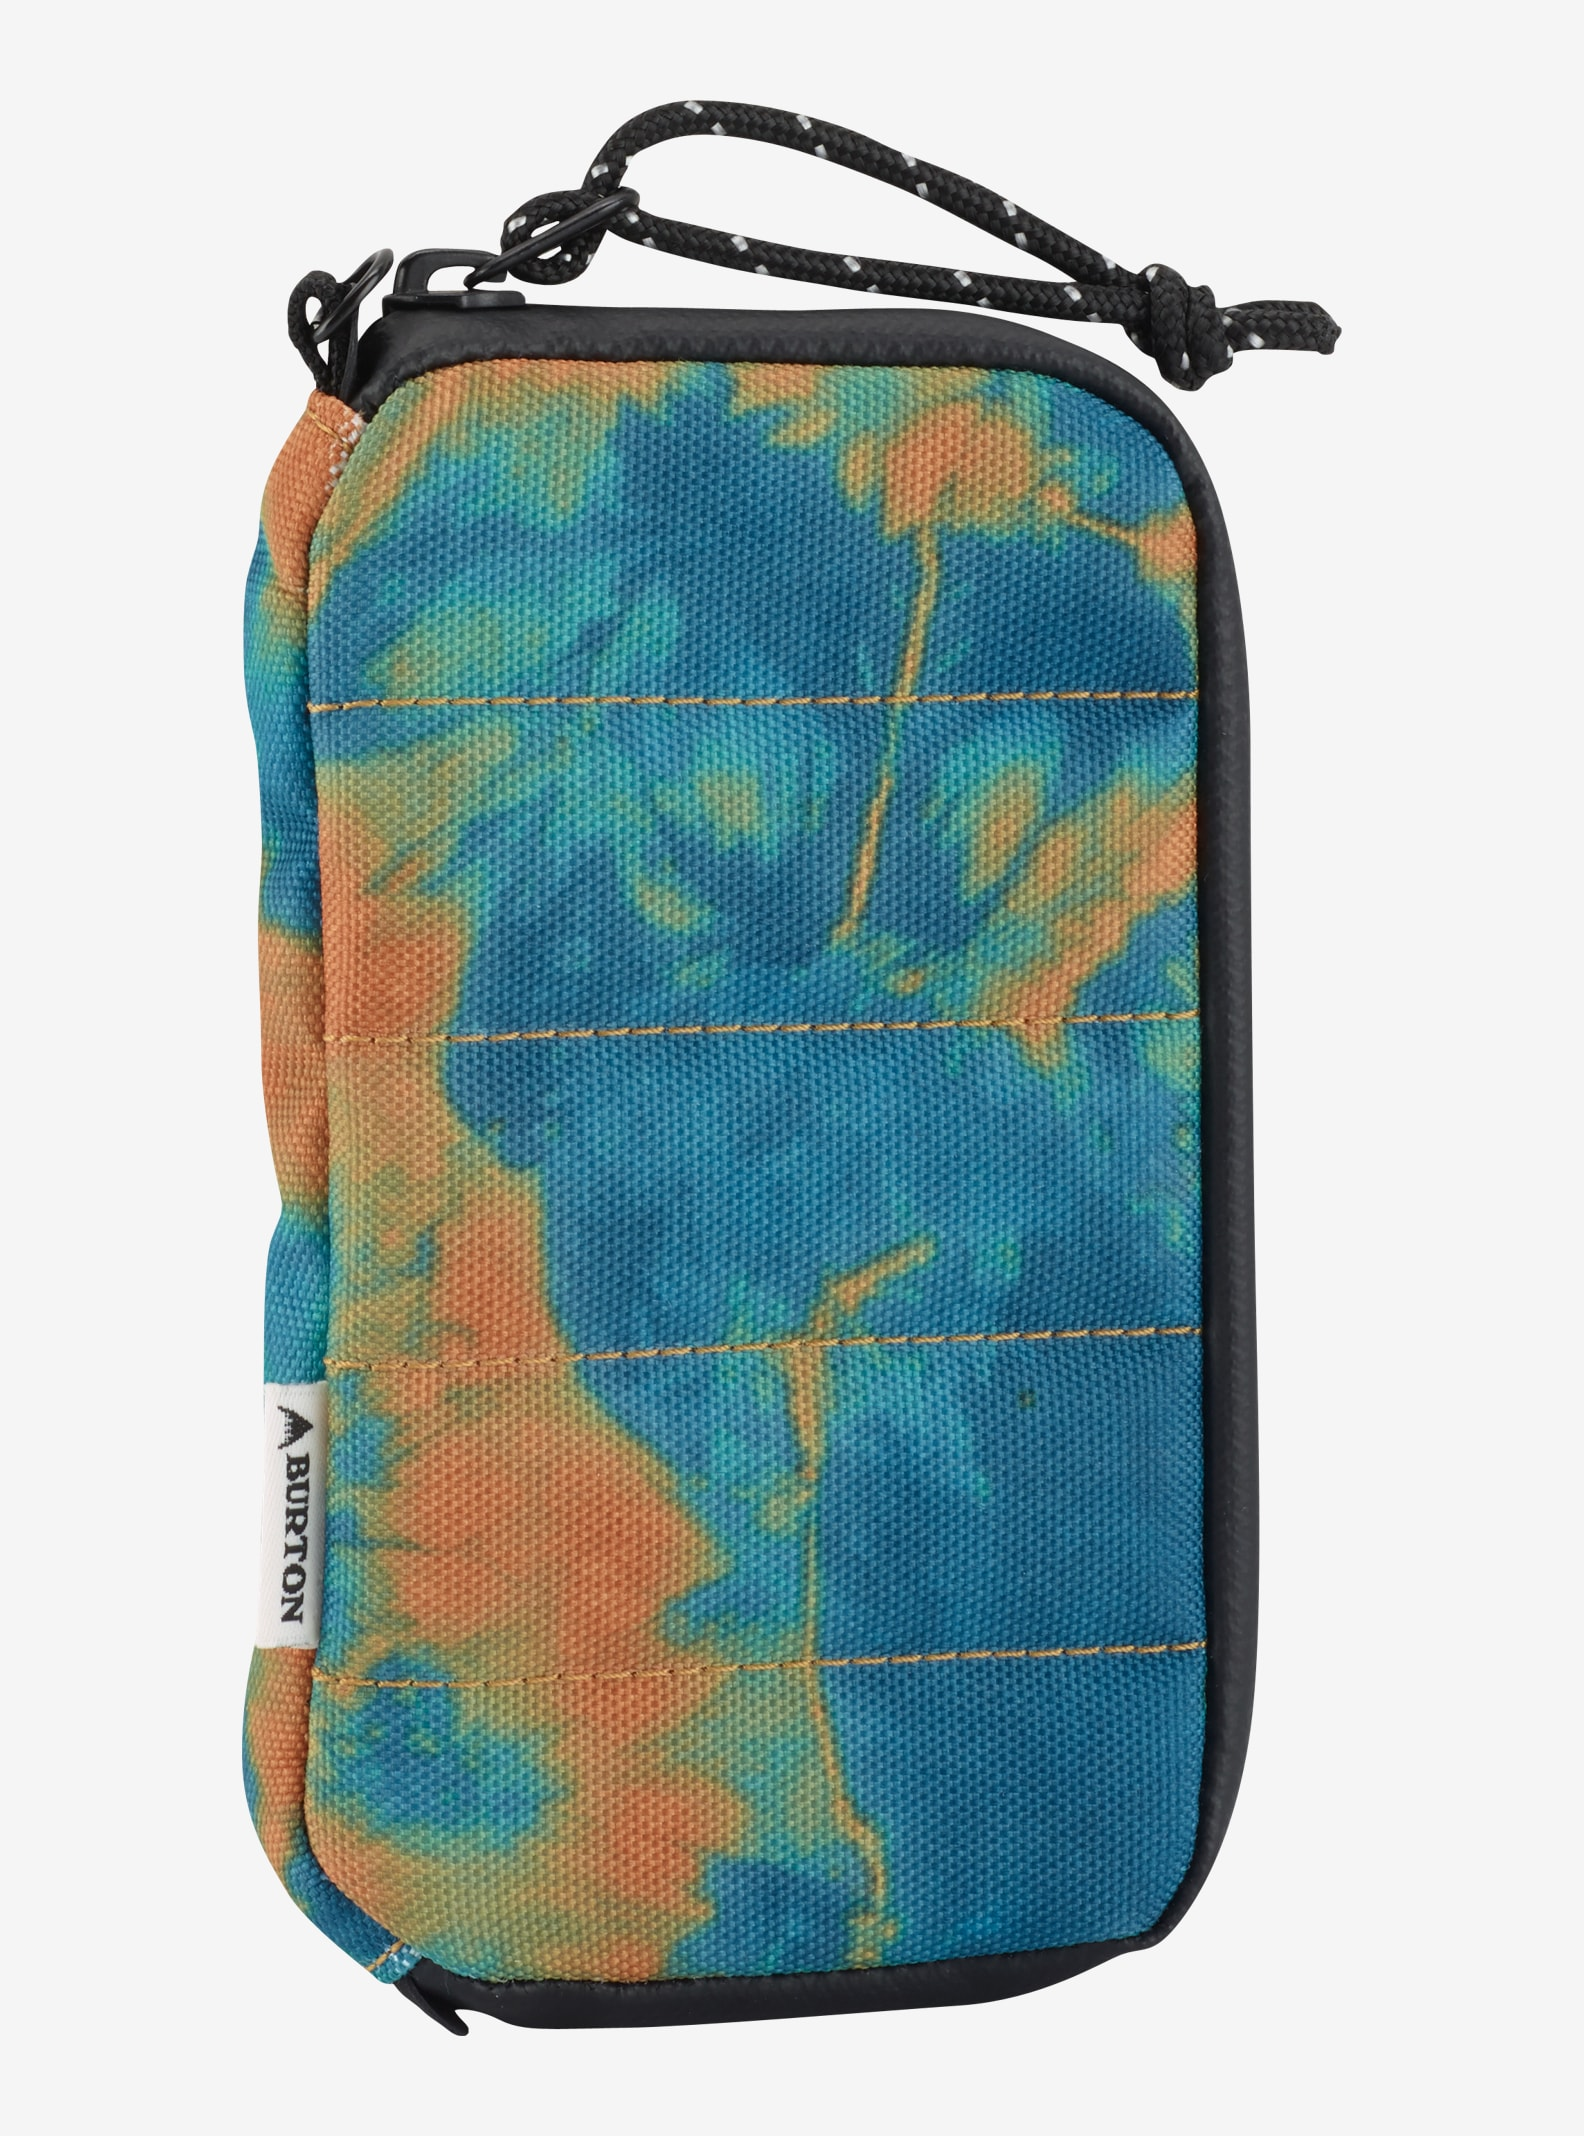 Burton Antifreeze Phone Case shown in Mountaineer Tie Dye Print